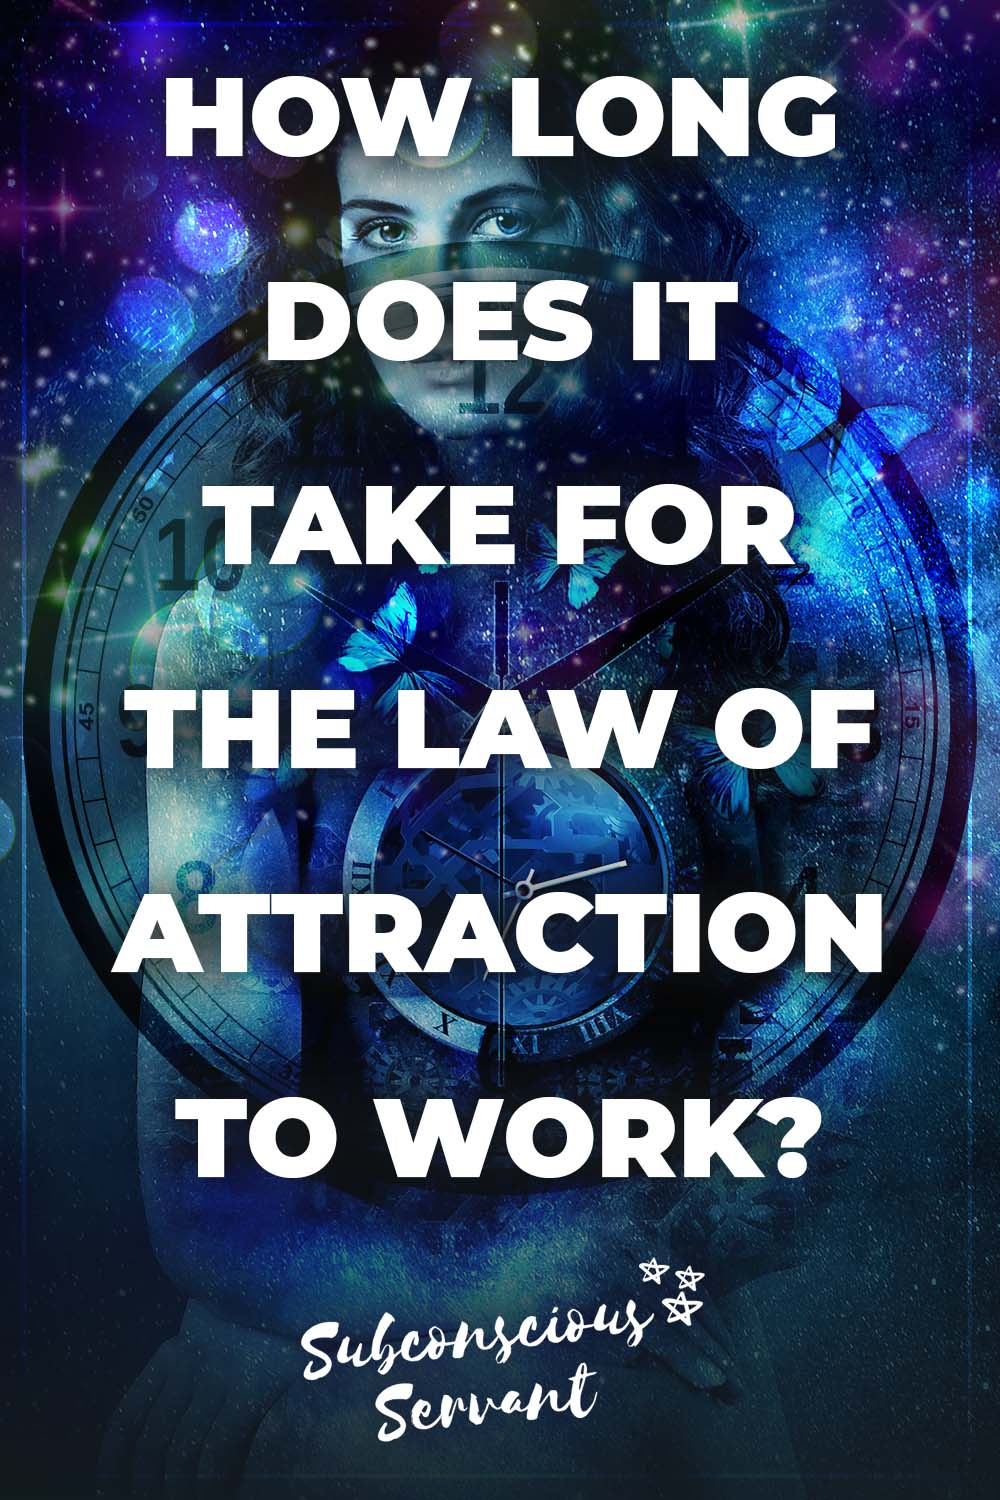 How Long Does It Take For The Law Of Attraction To Work?